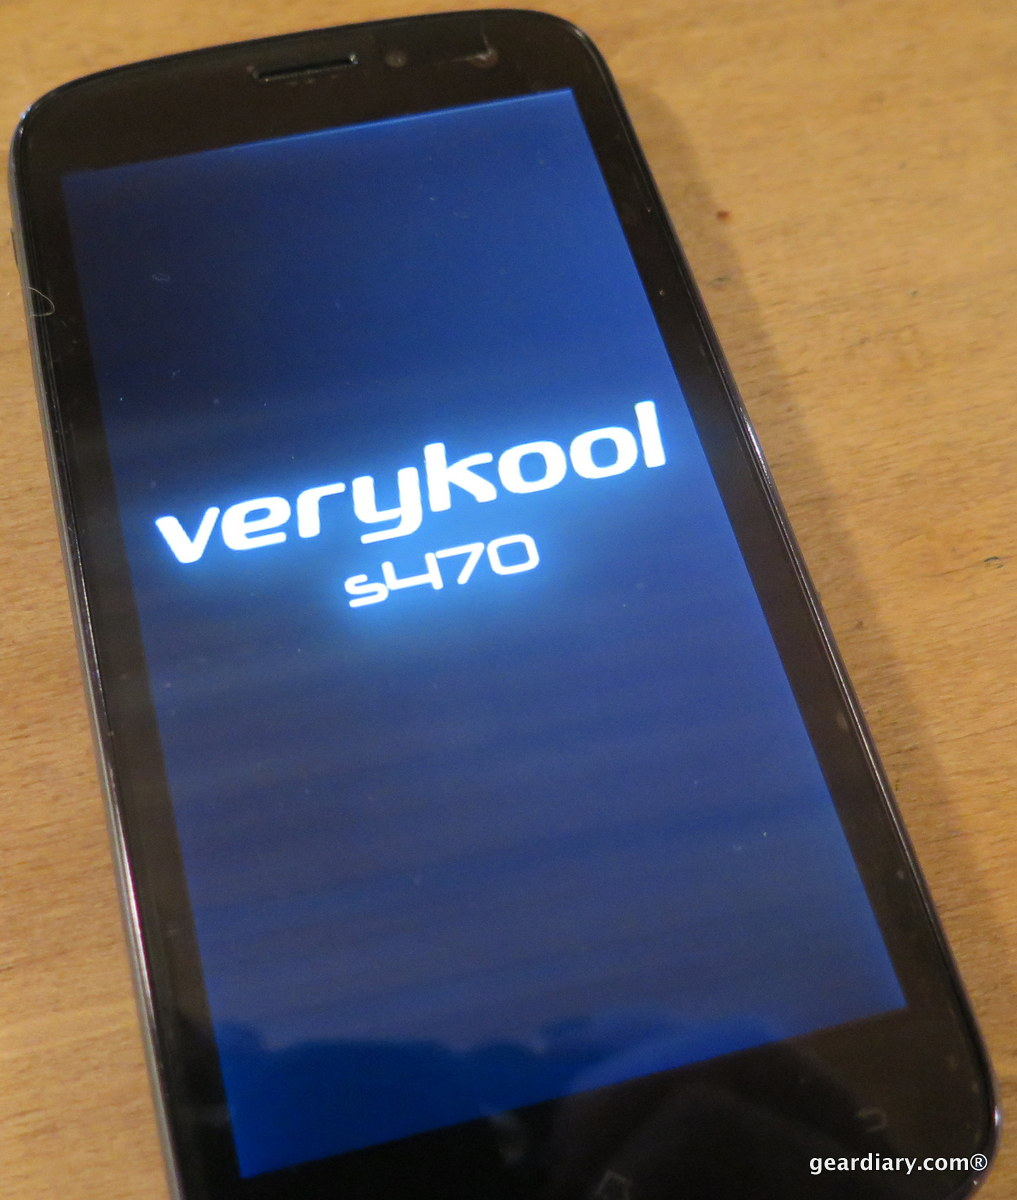 VeryKool Travel Gear Mobile Phones & Gear Android